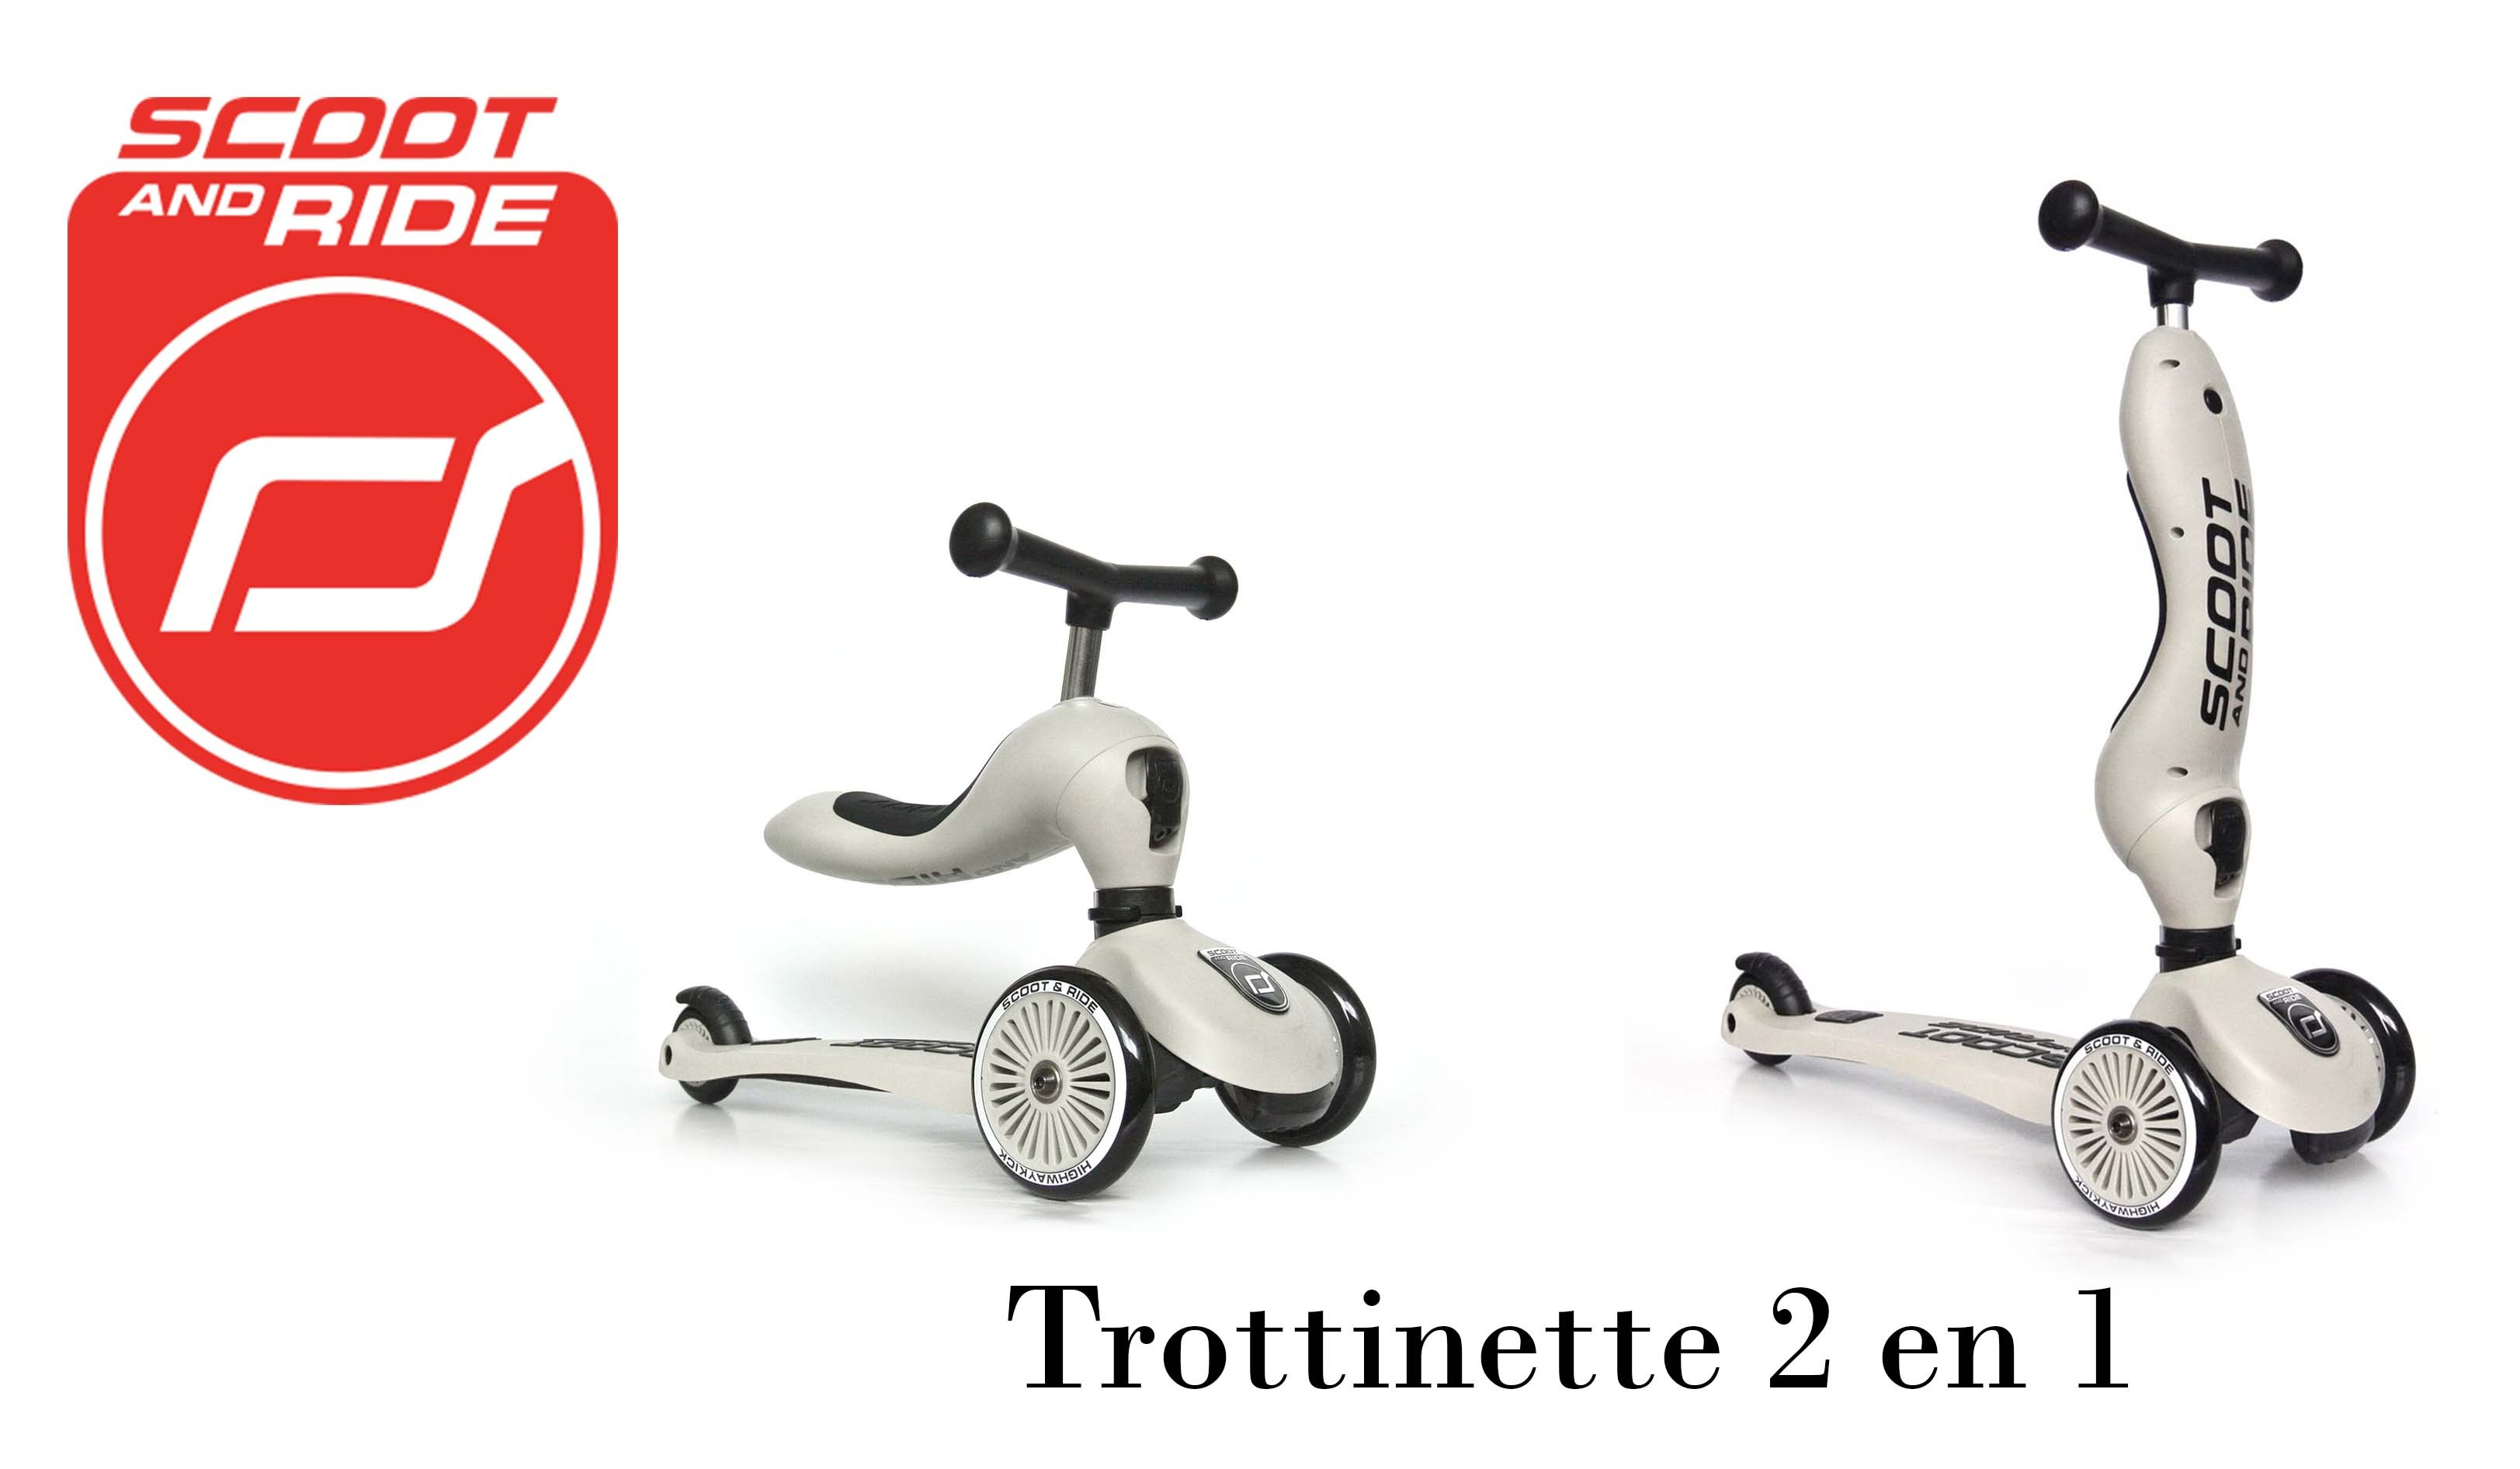 Trottinette scoot and ride